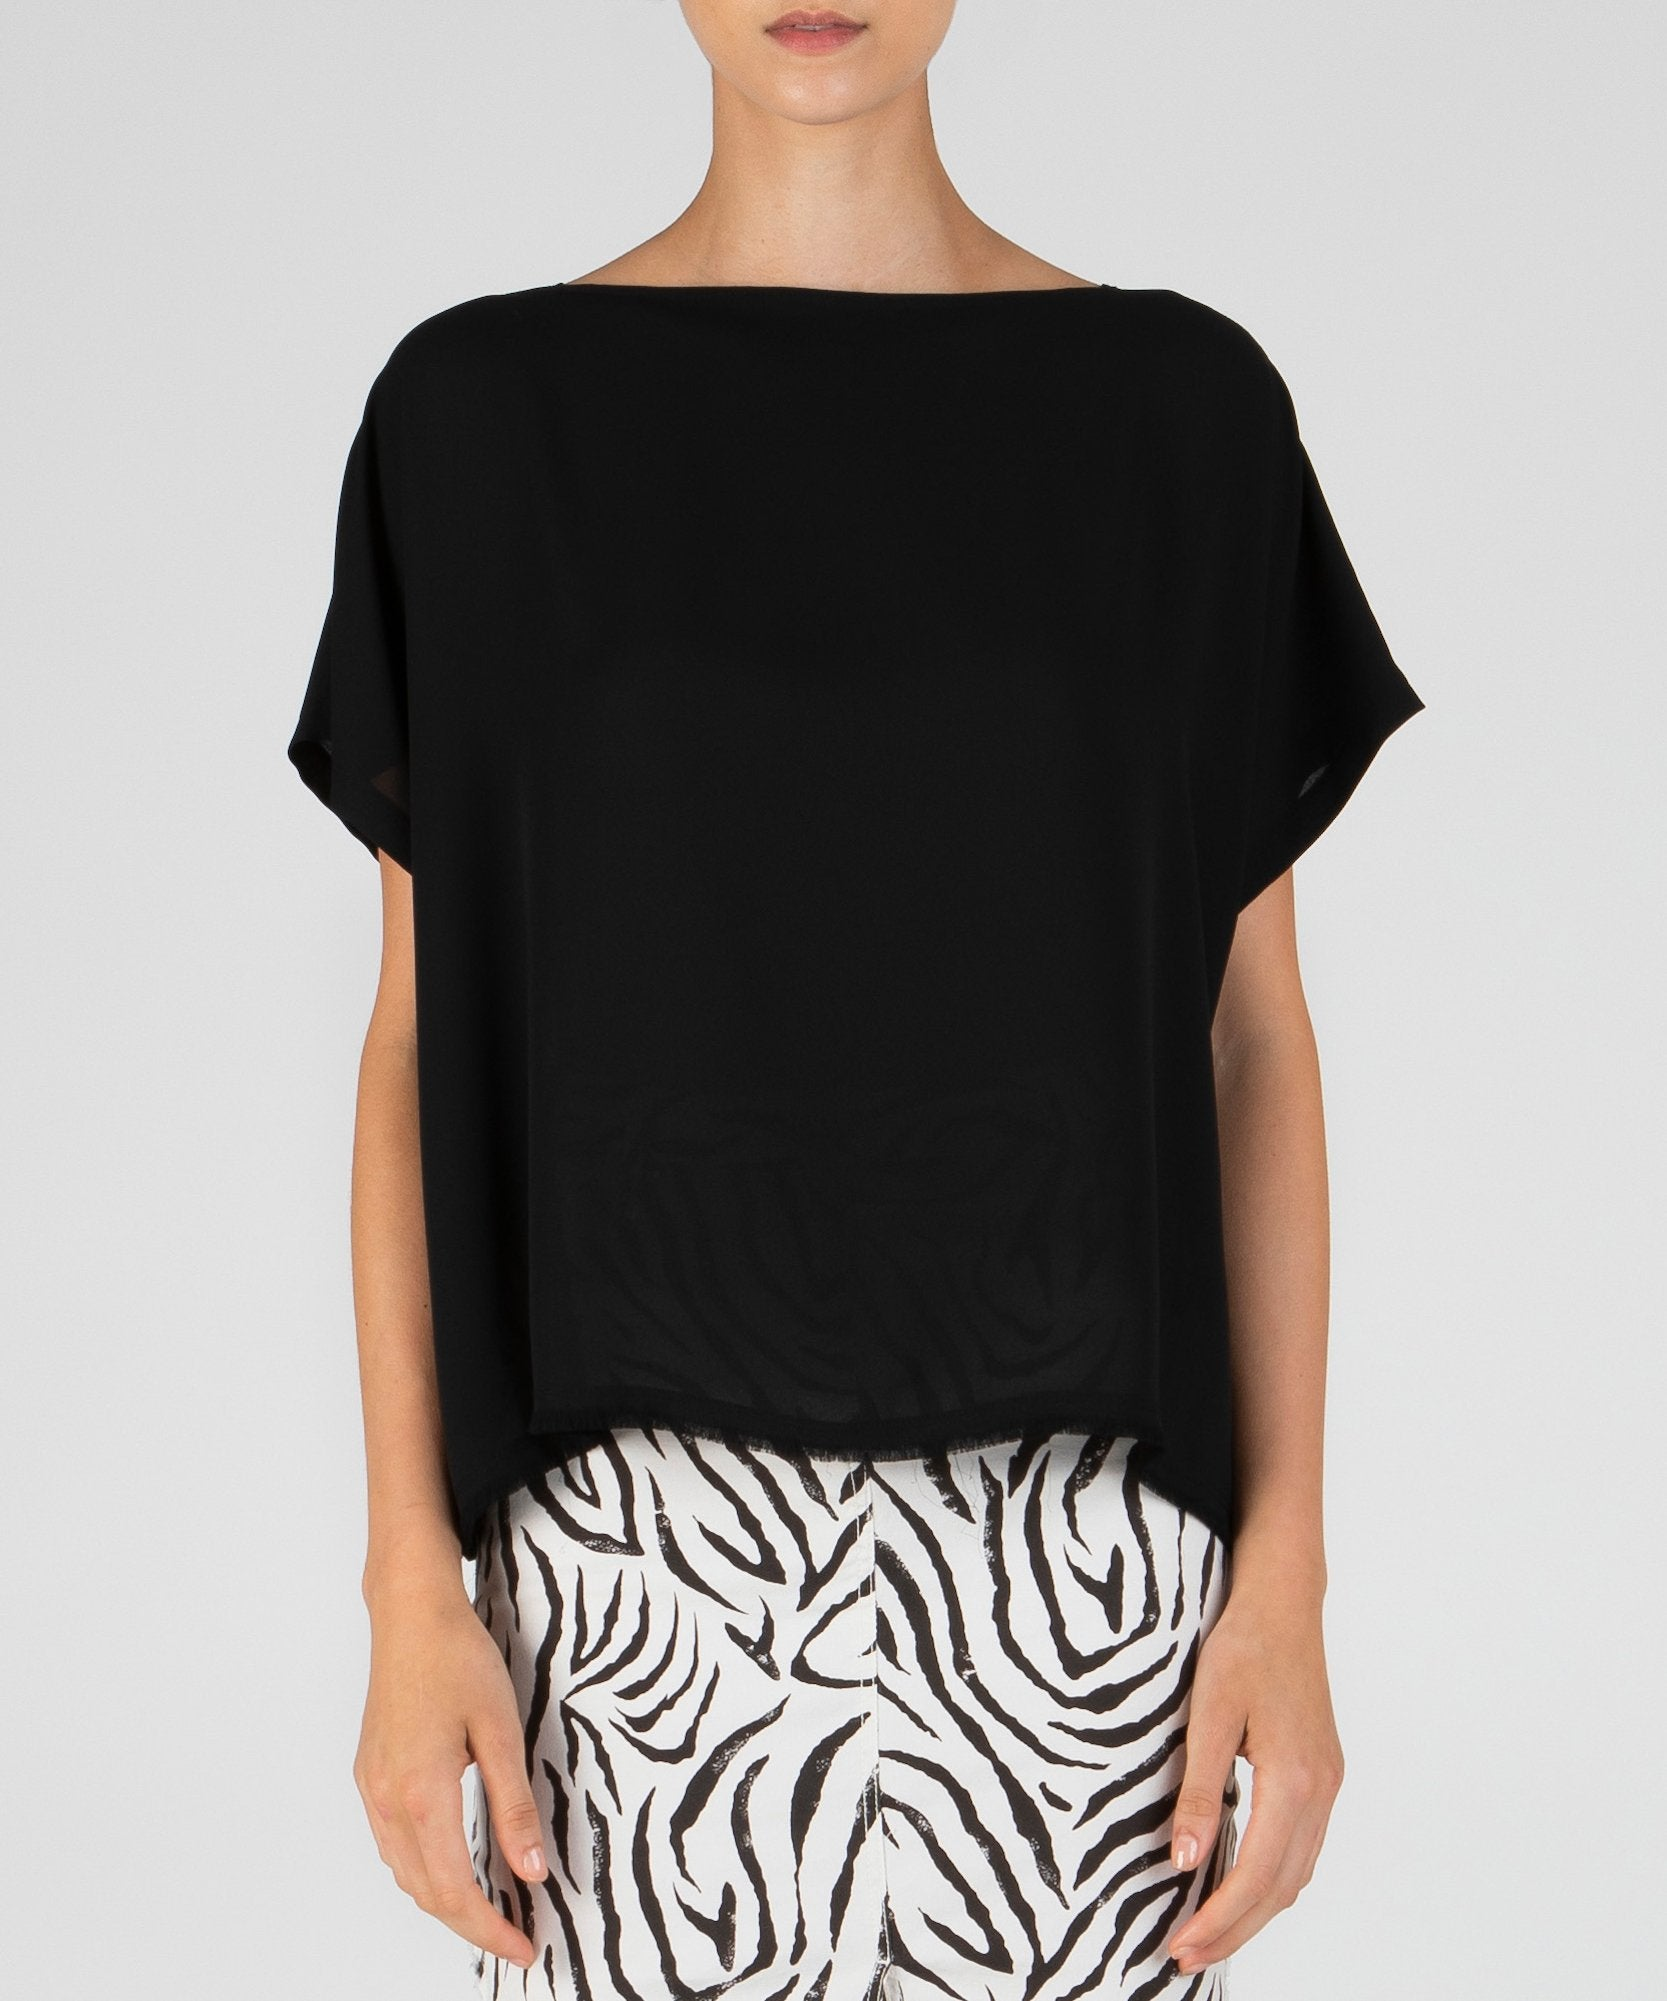 Black Crepe Georgette Boat Neck Top - Women's Blouse by ATM Anthony Thomas Melillo